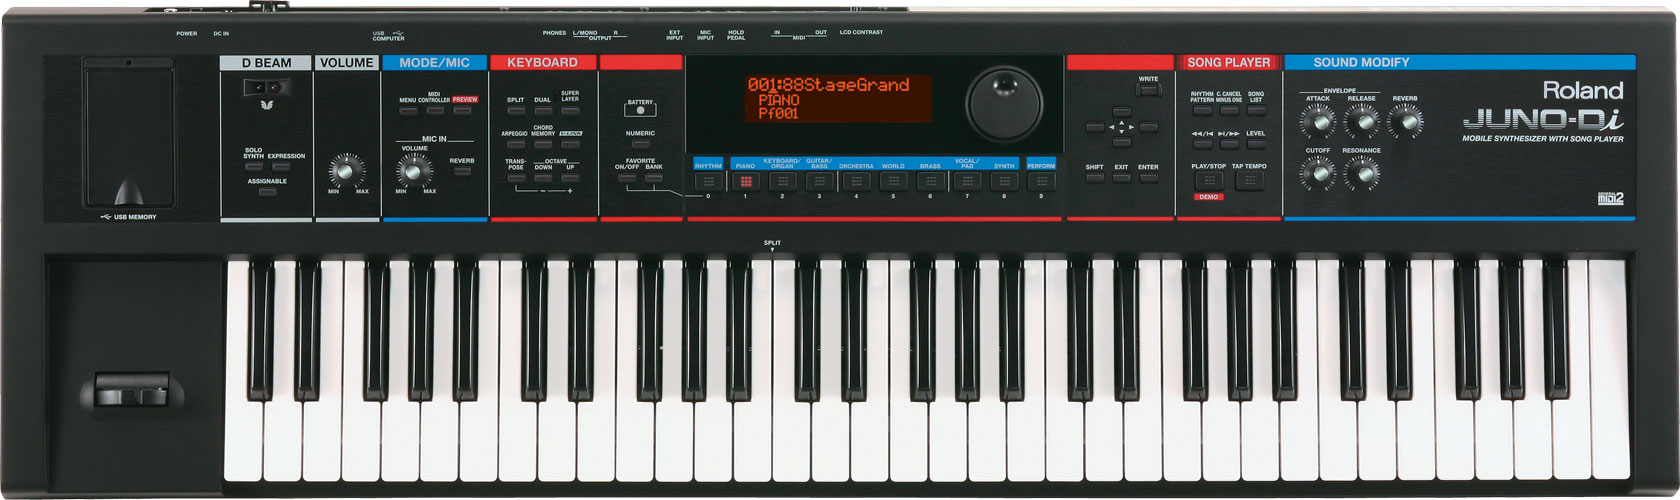 Roland - JUNO-Di | Mobile Synthesizer with Song Player